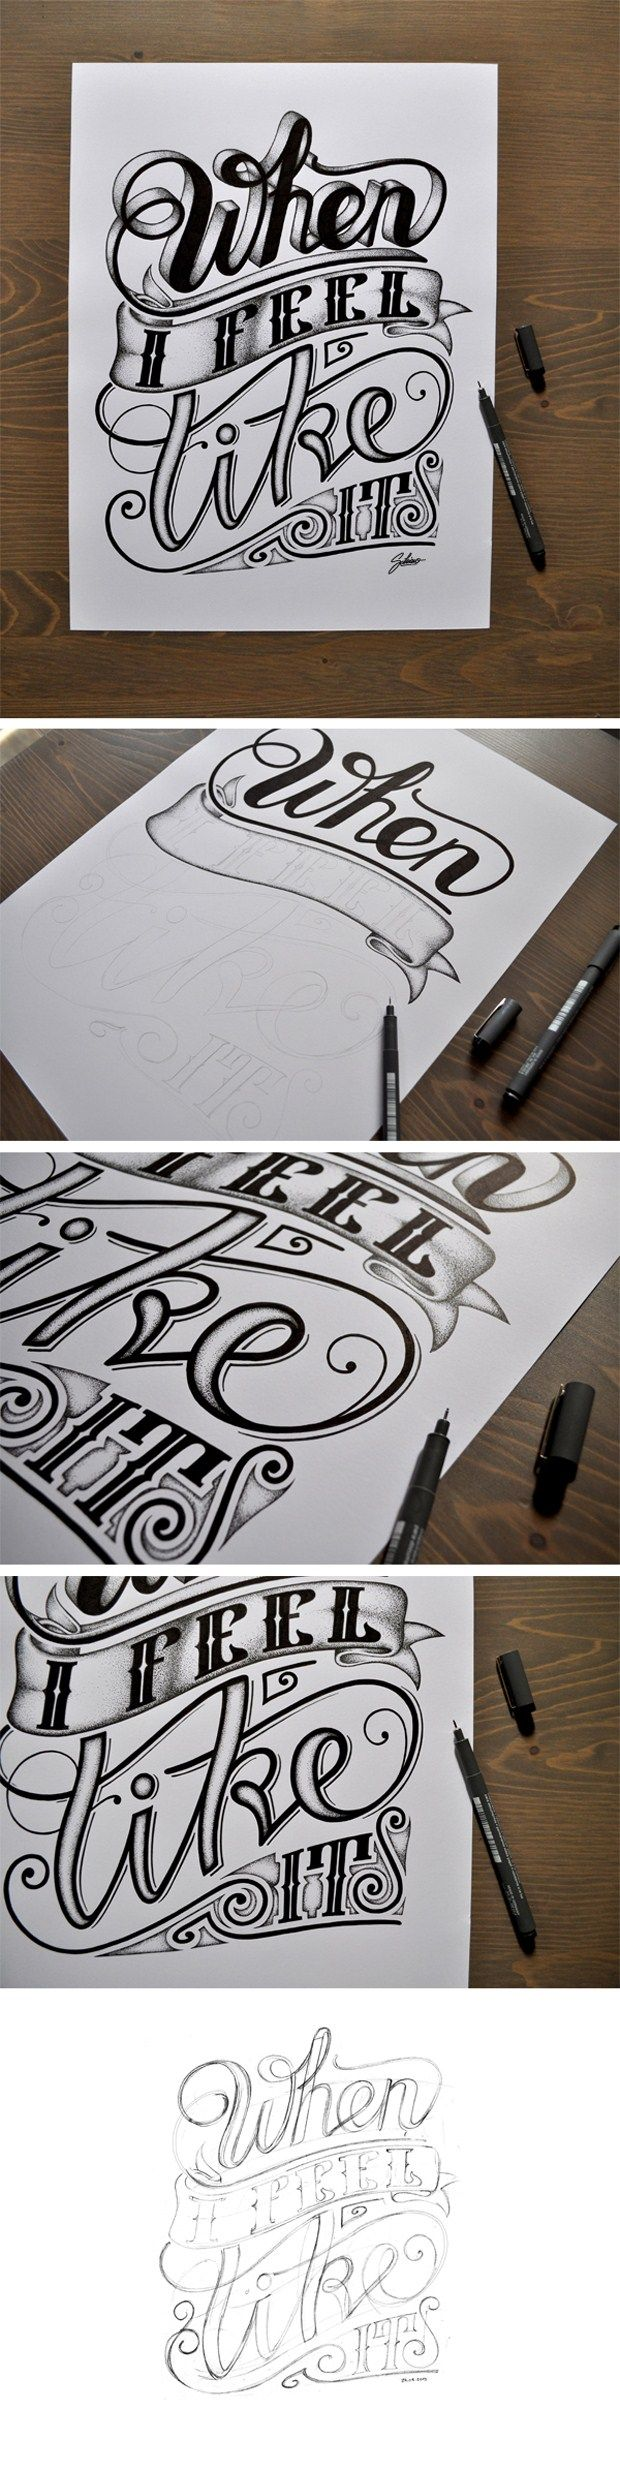 gothic jewellery australia Steps of Hand lettering  amp  inking  When I feel like it  Typography Design for Your Inspiration